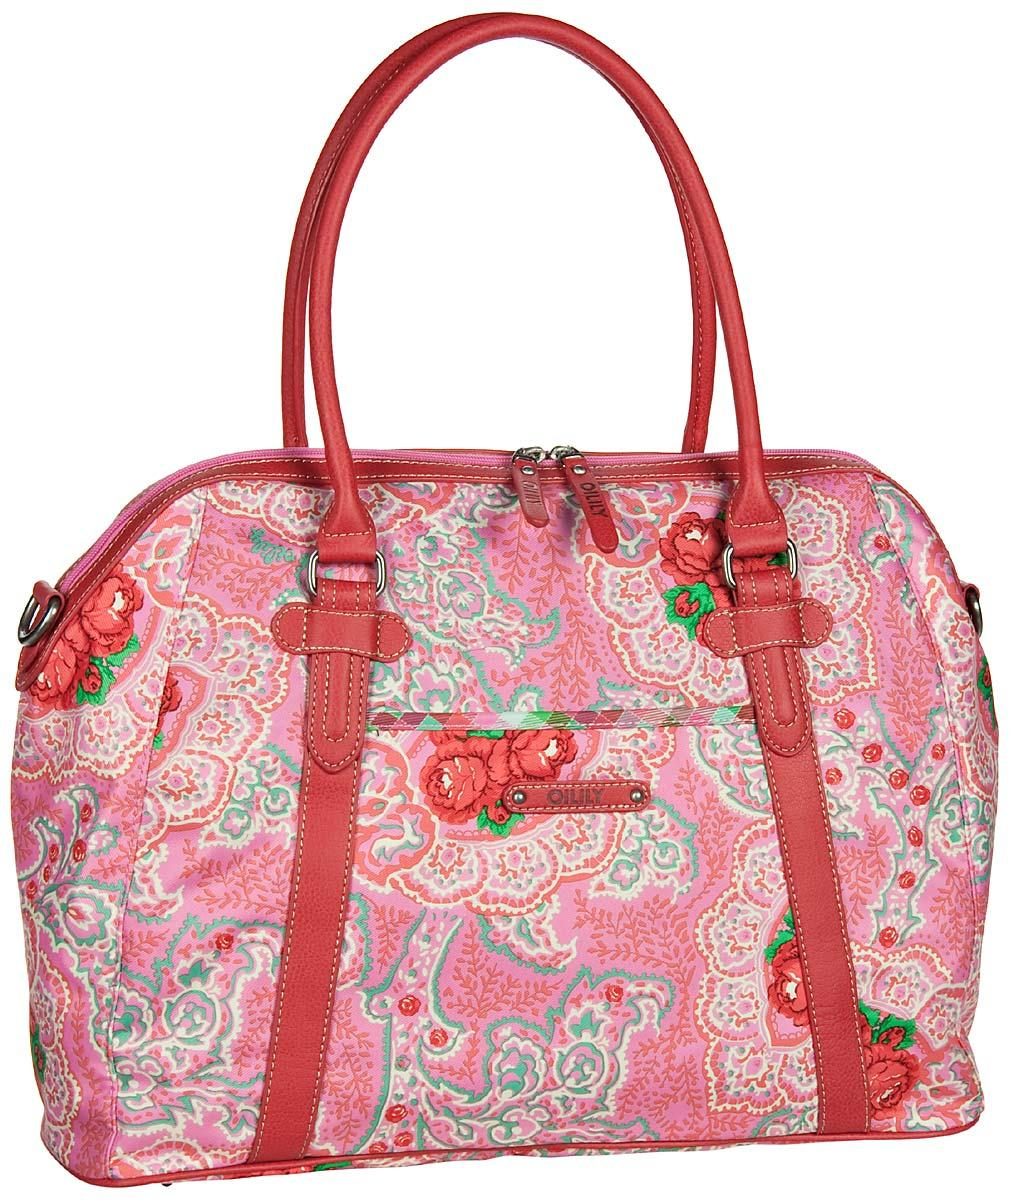 Apron-Carry-All-Oilily-1065811818.jpg